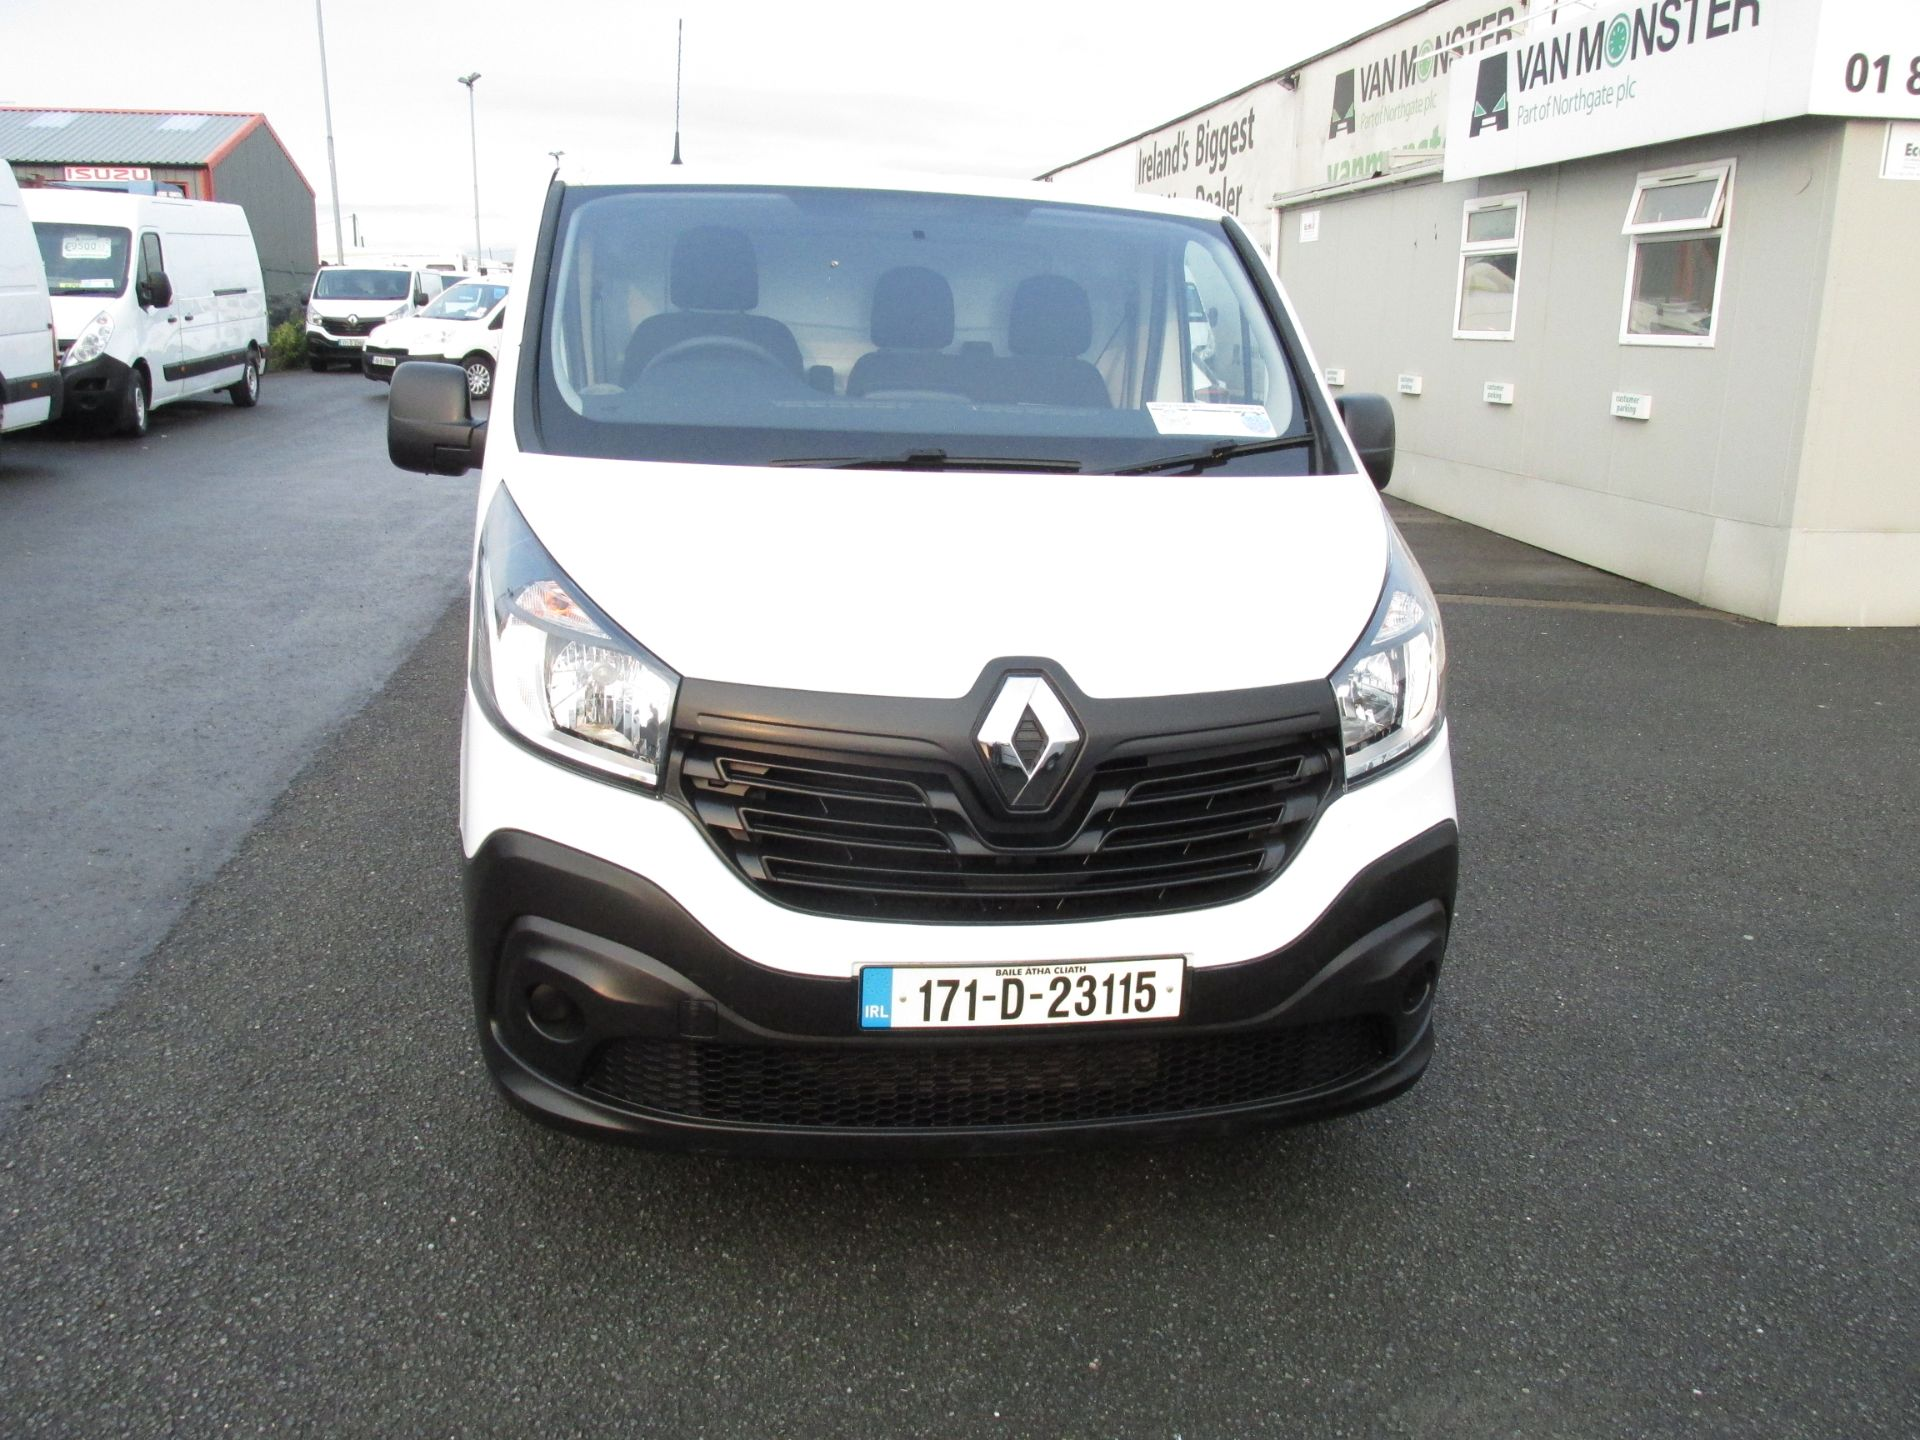 2017 Renault Trafic LL29 DCI 120 Business 3DR (171D23115) Image 2